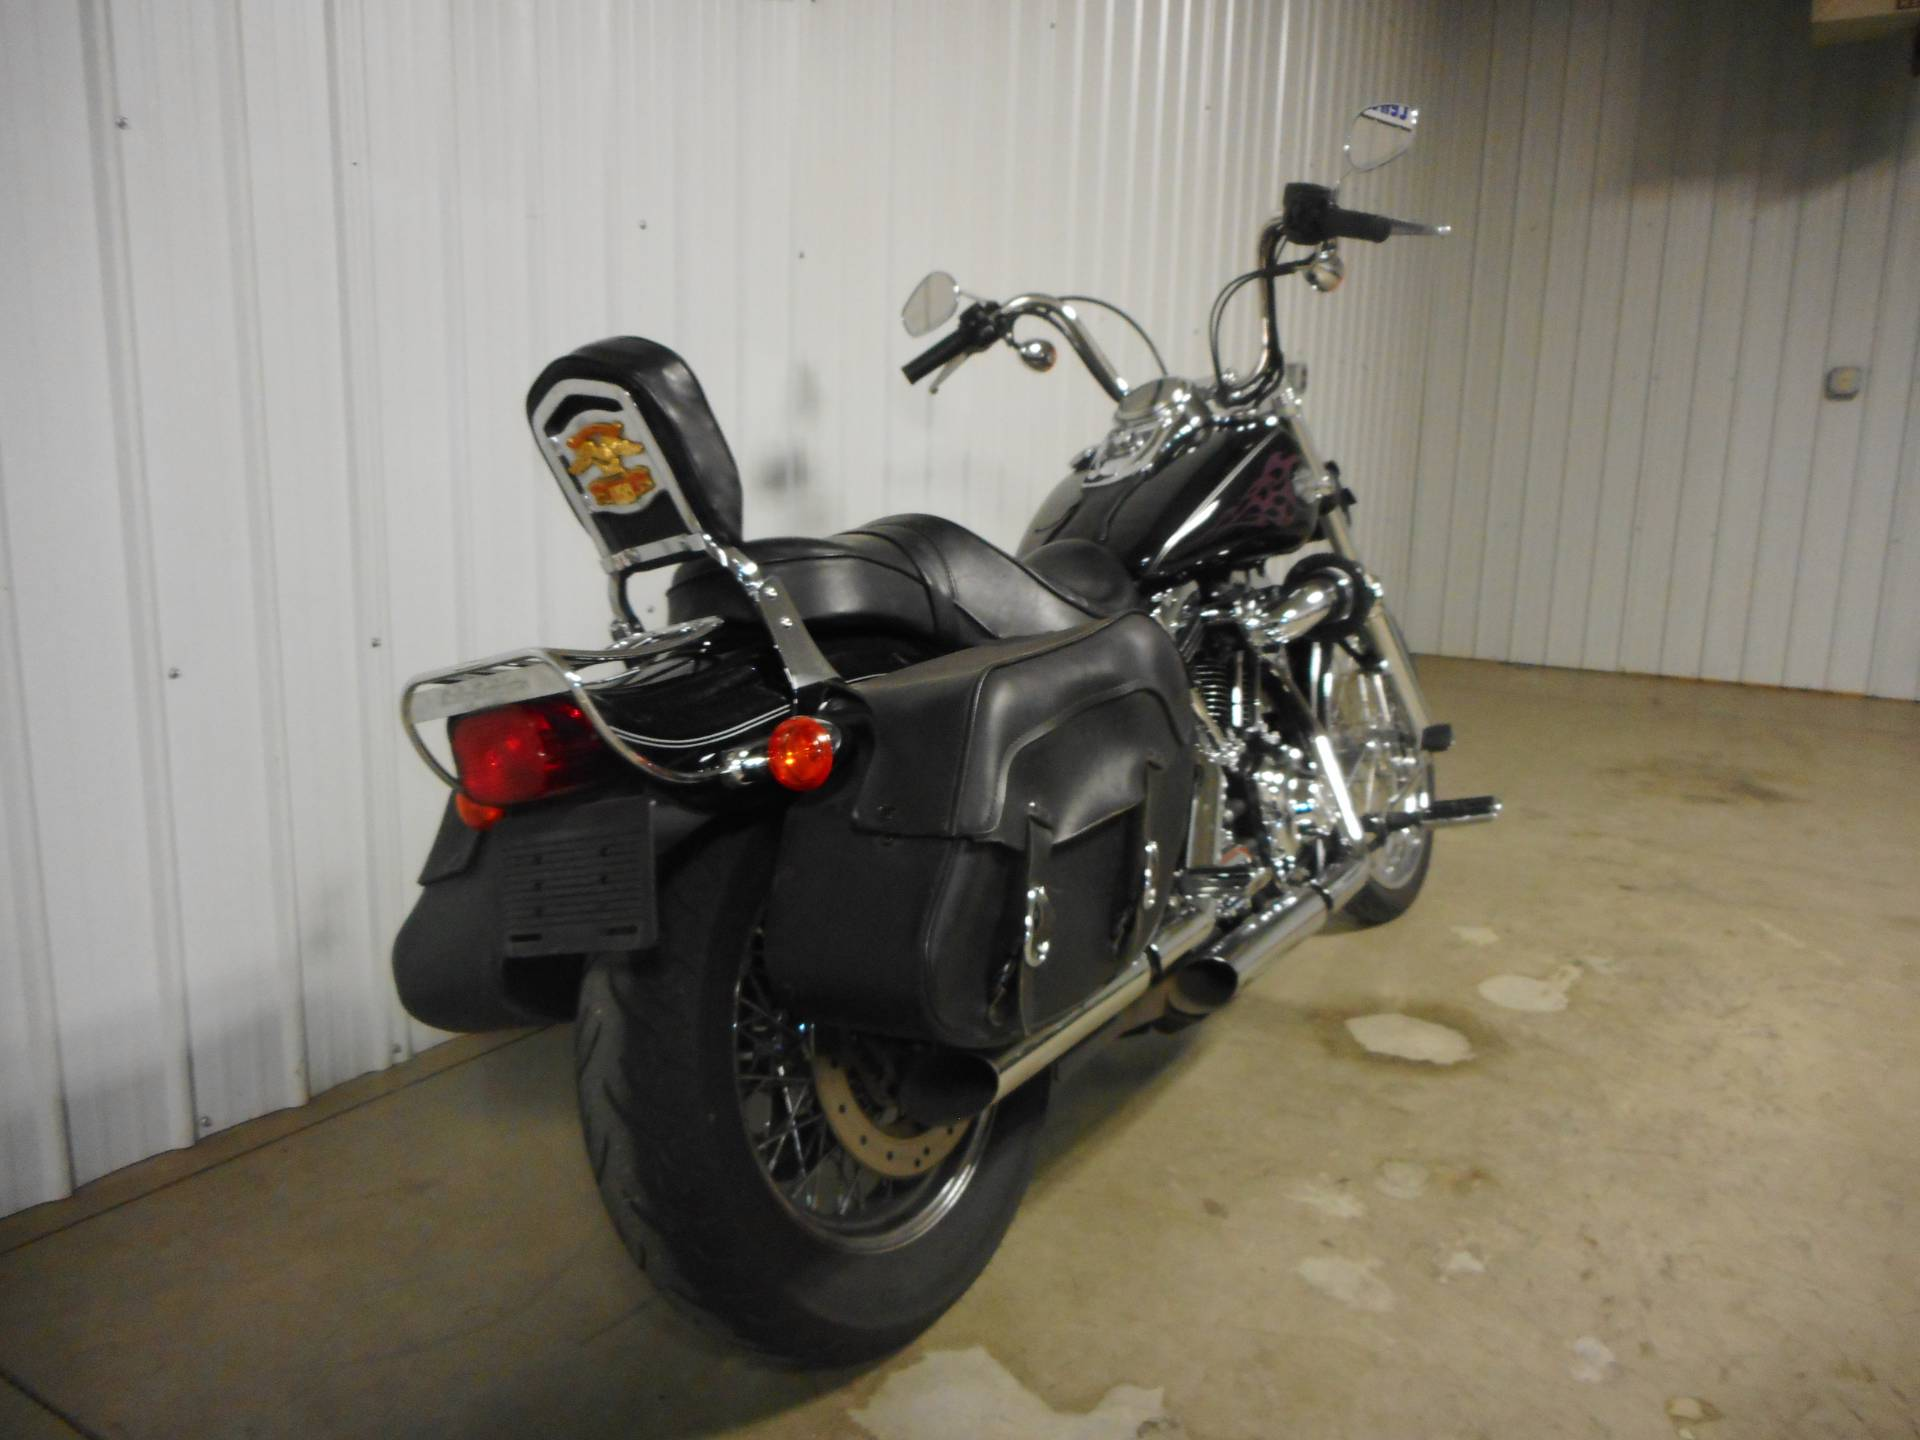 2005 Harley-Davidson FXDWG/FXDWGI Dyna Wide Glide® in Galeton, Pennsylvania - Photo 3